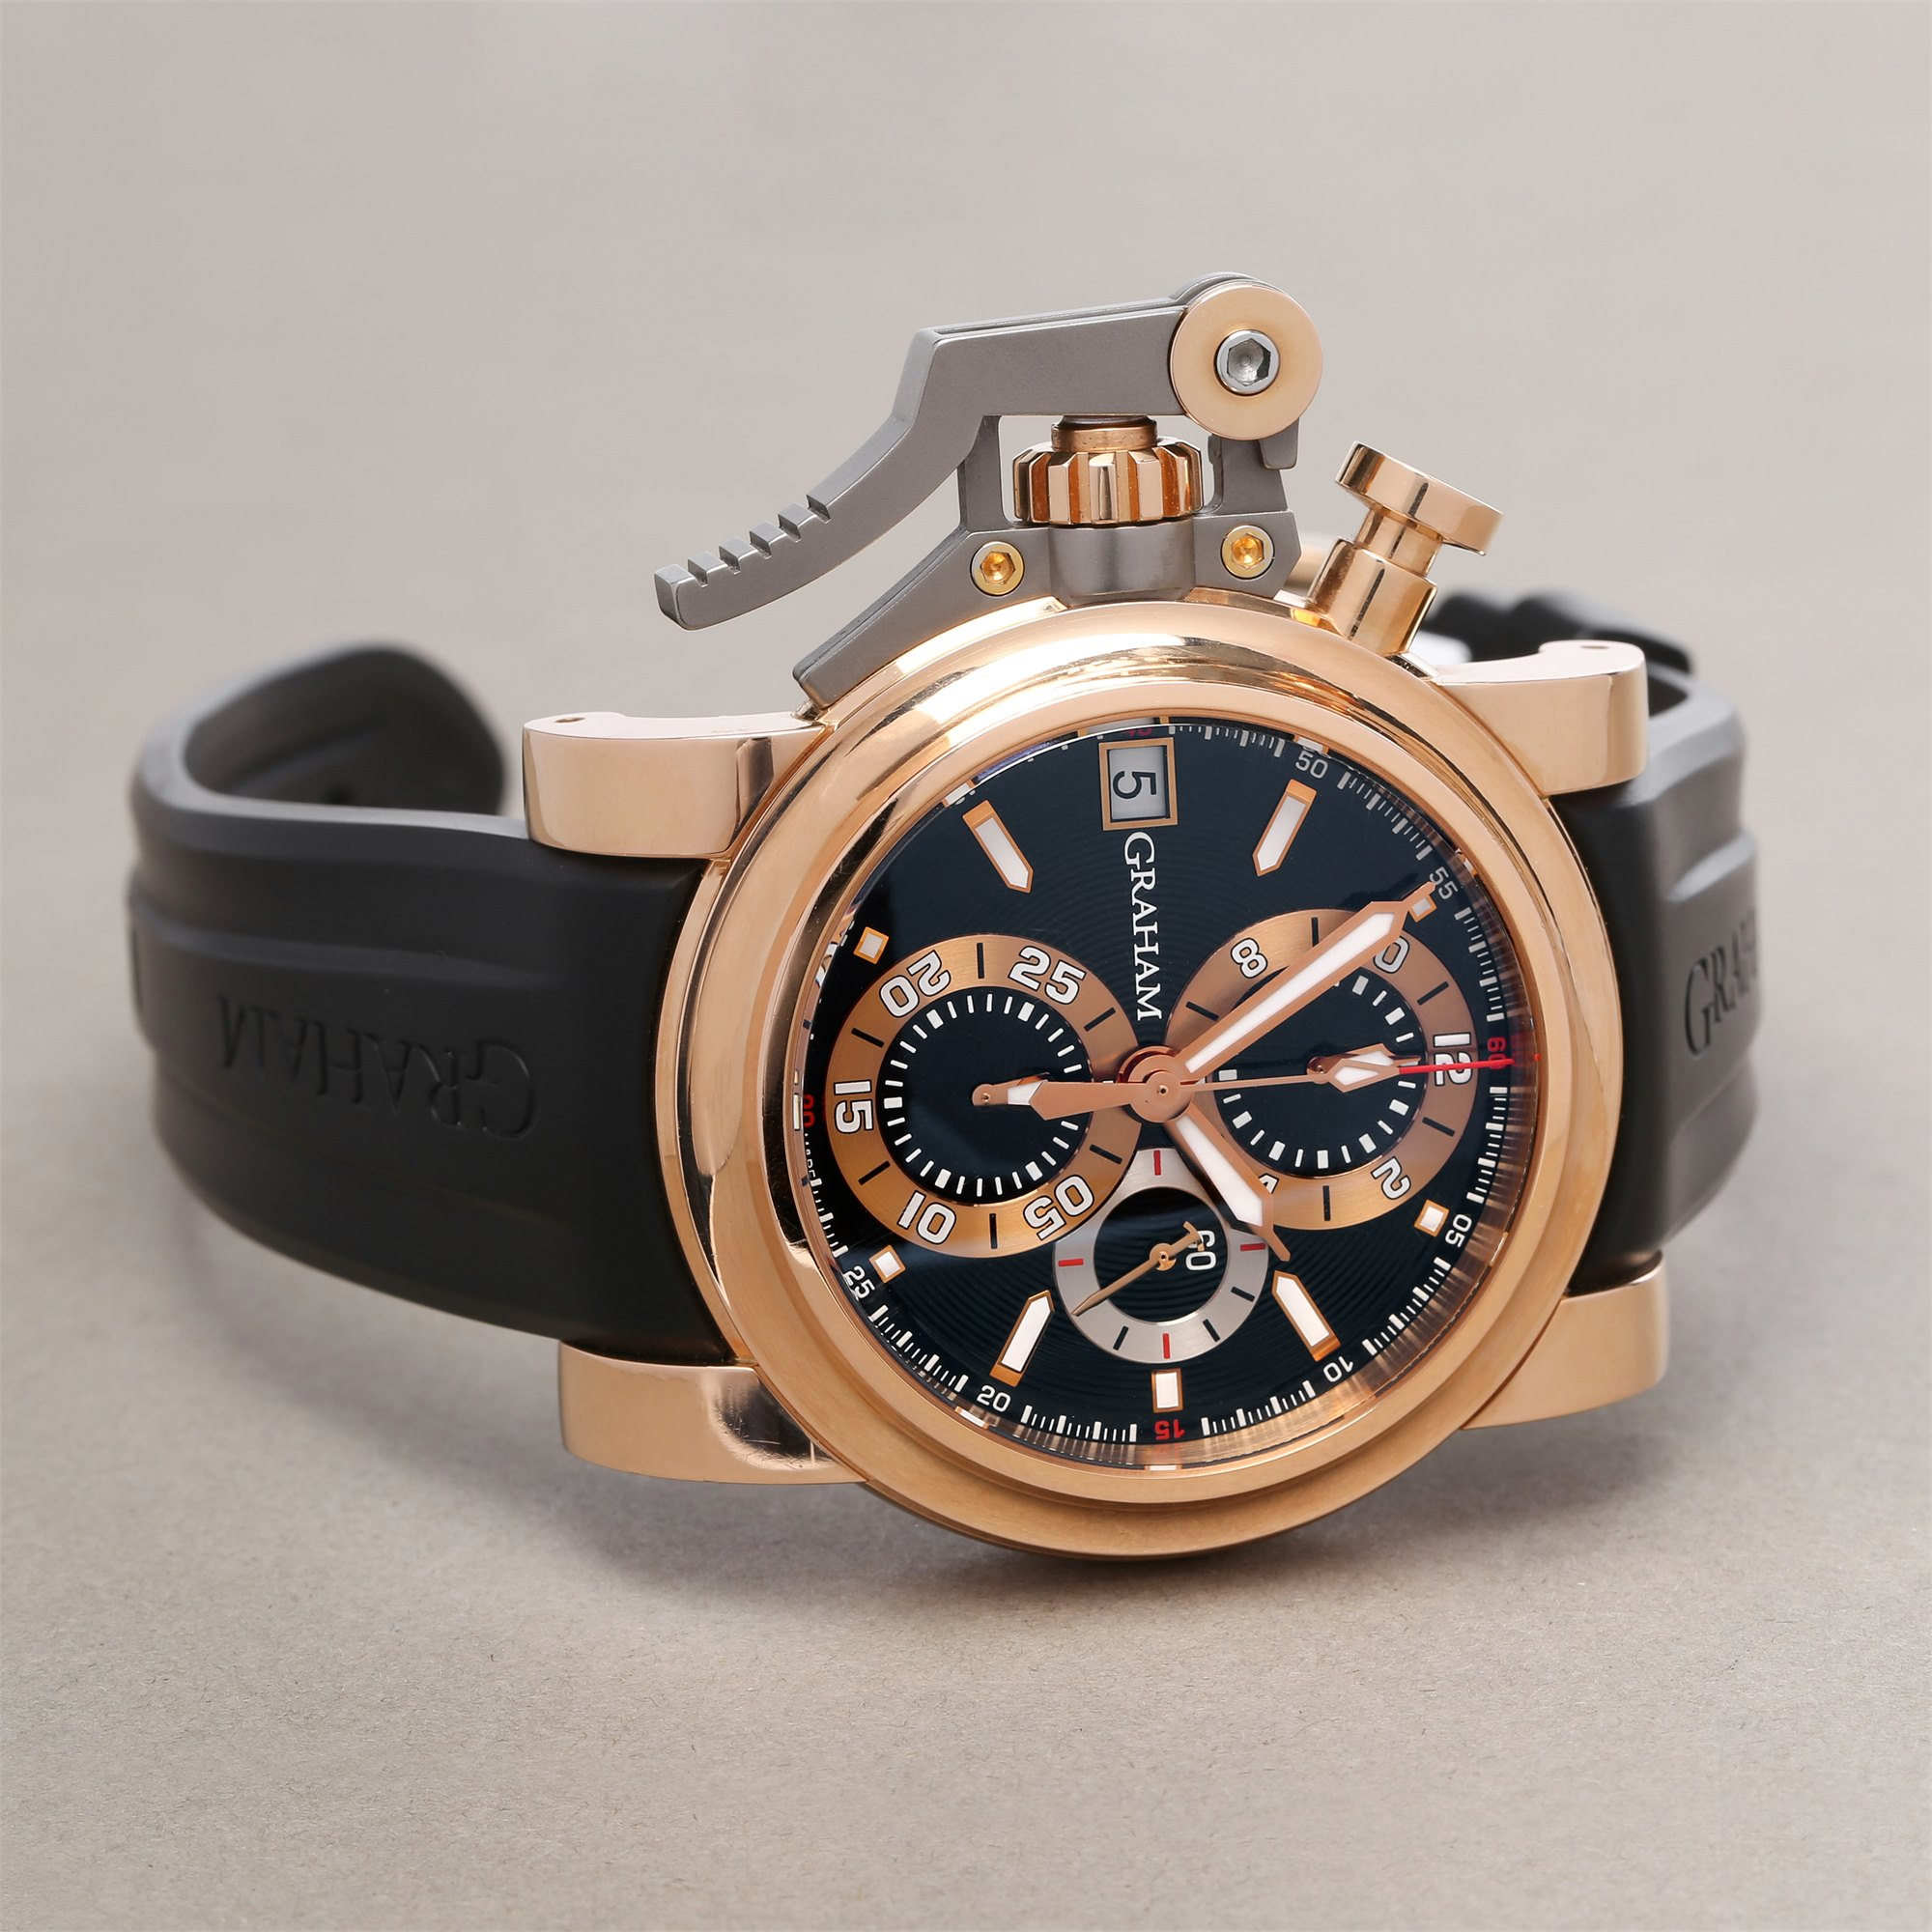 Graham Chronofighter Oversize Goldfinger Chronograph 18K Rose Goud 2OVCF.B08A.C83T